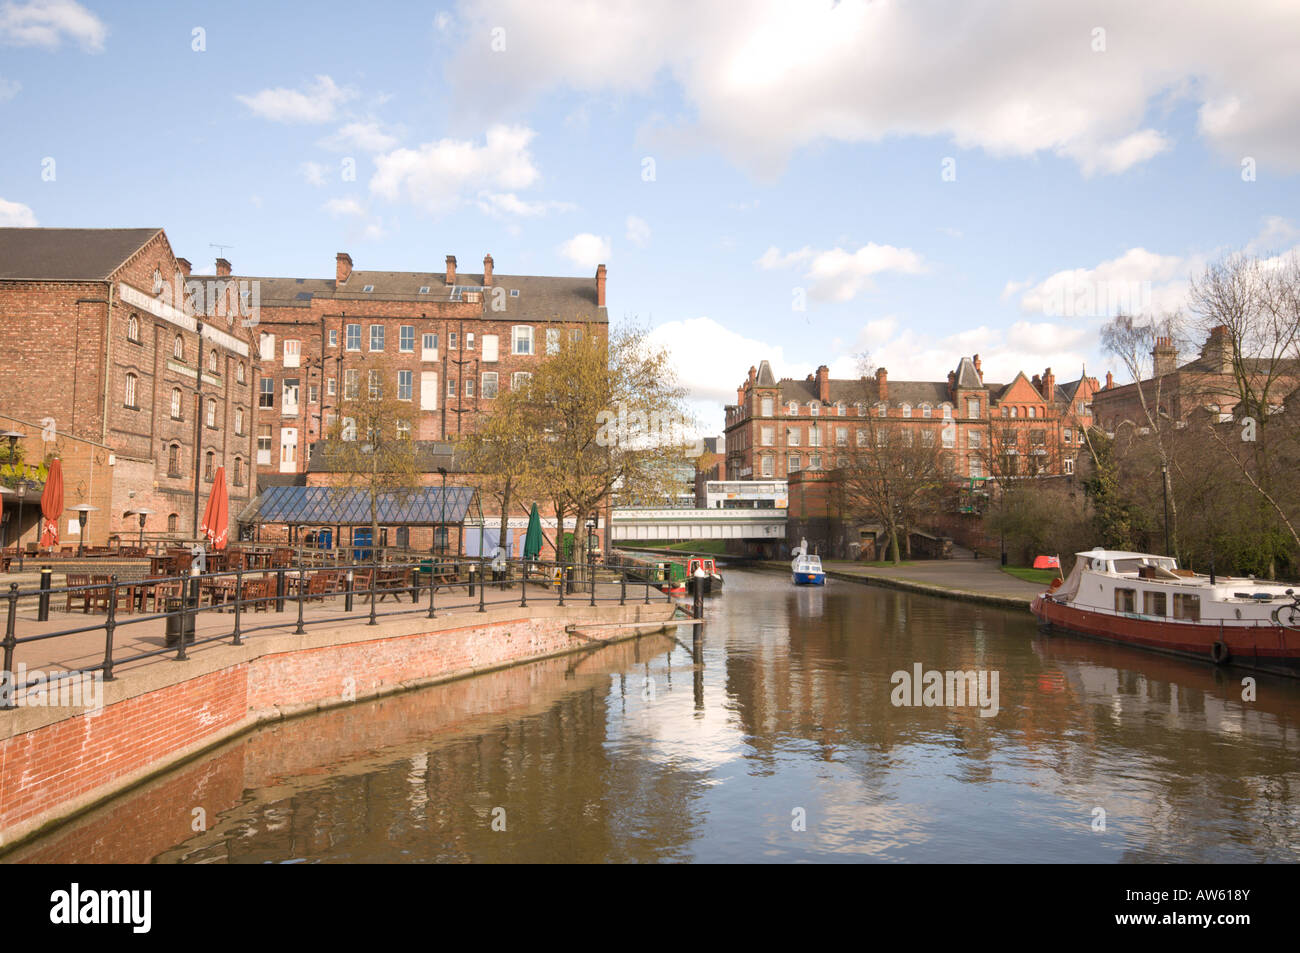 Castle wharf, Nottingham - Stock Image